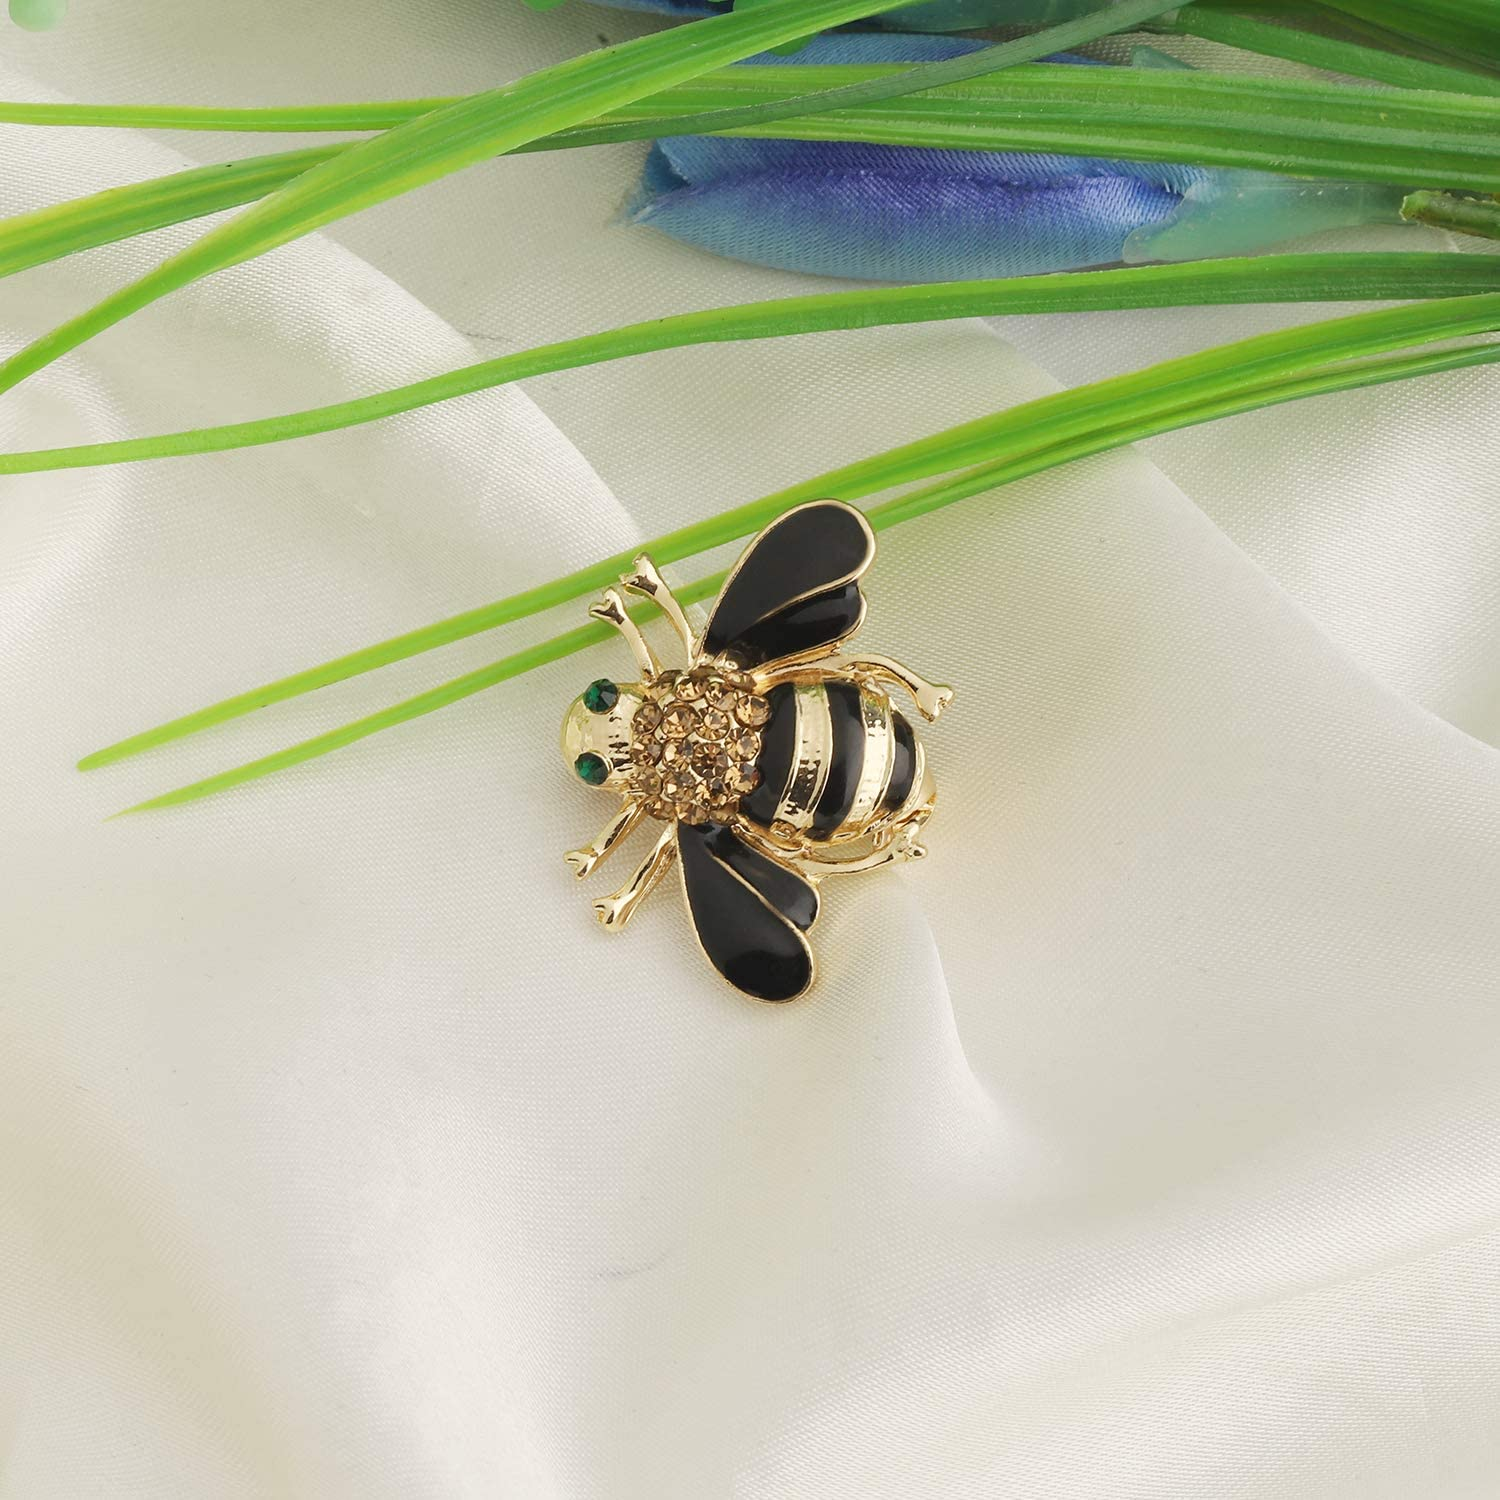 MYOSPARK Honey Bee Brooch Yellow Crystal Insect Themed Bee Brooch Animal Jewelry Gift for Teacher Bee Lover